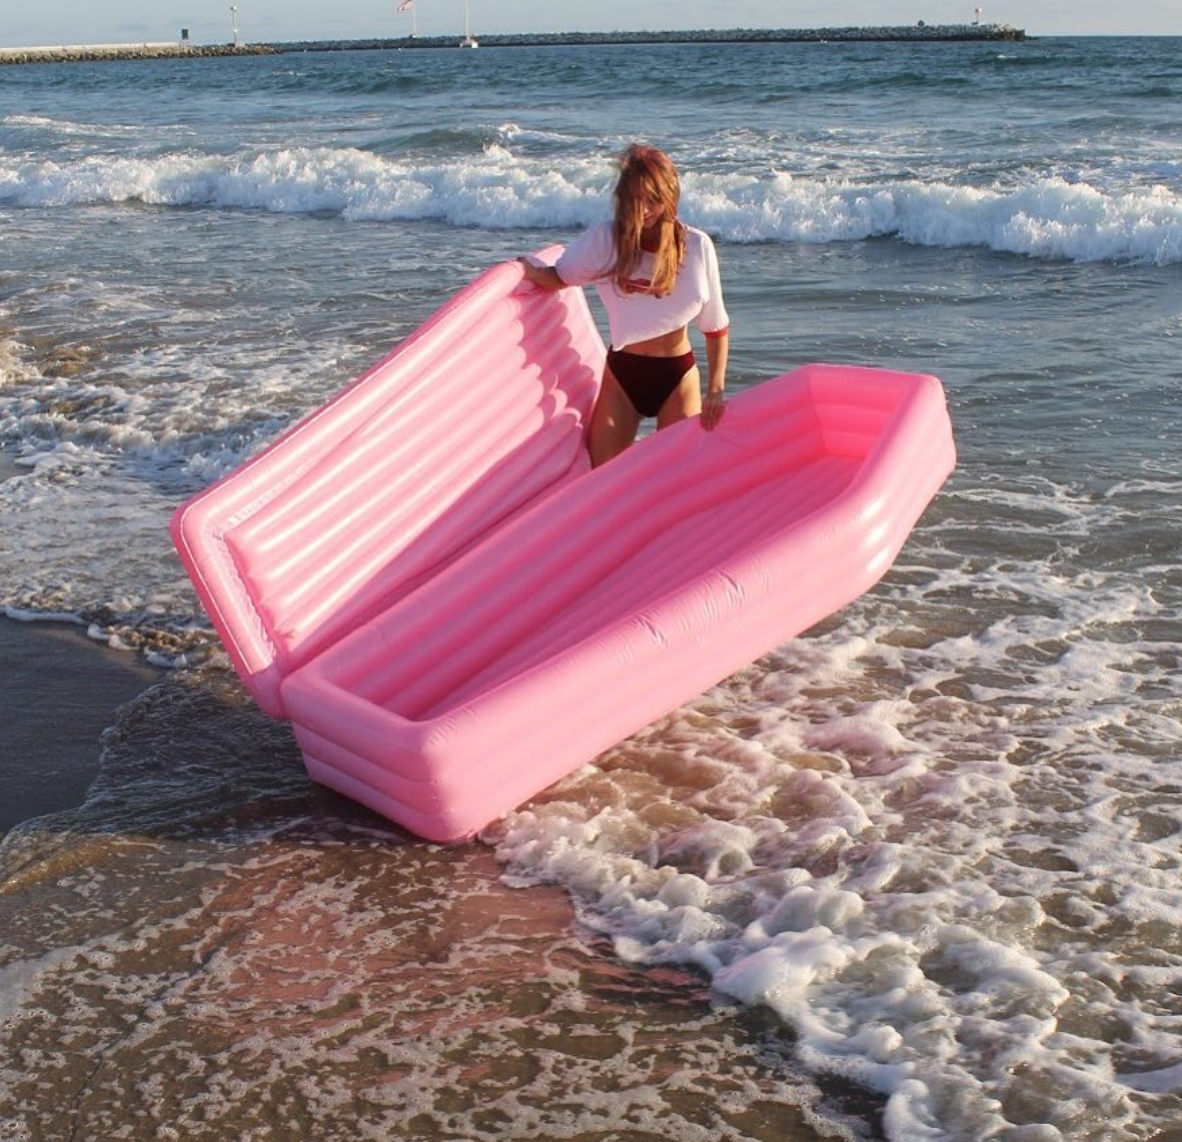 Millennial pink coffin pool floats are a thing, and Twitter is dying over them